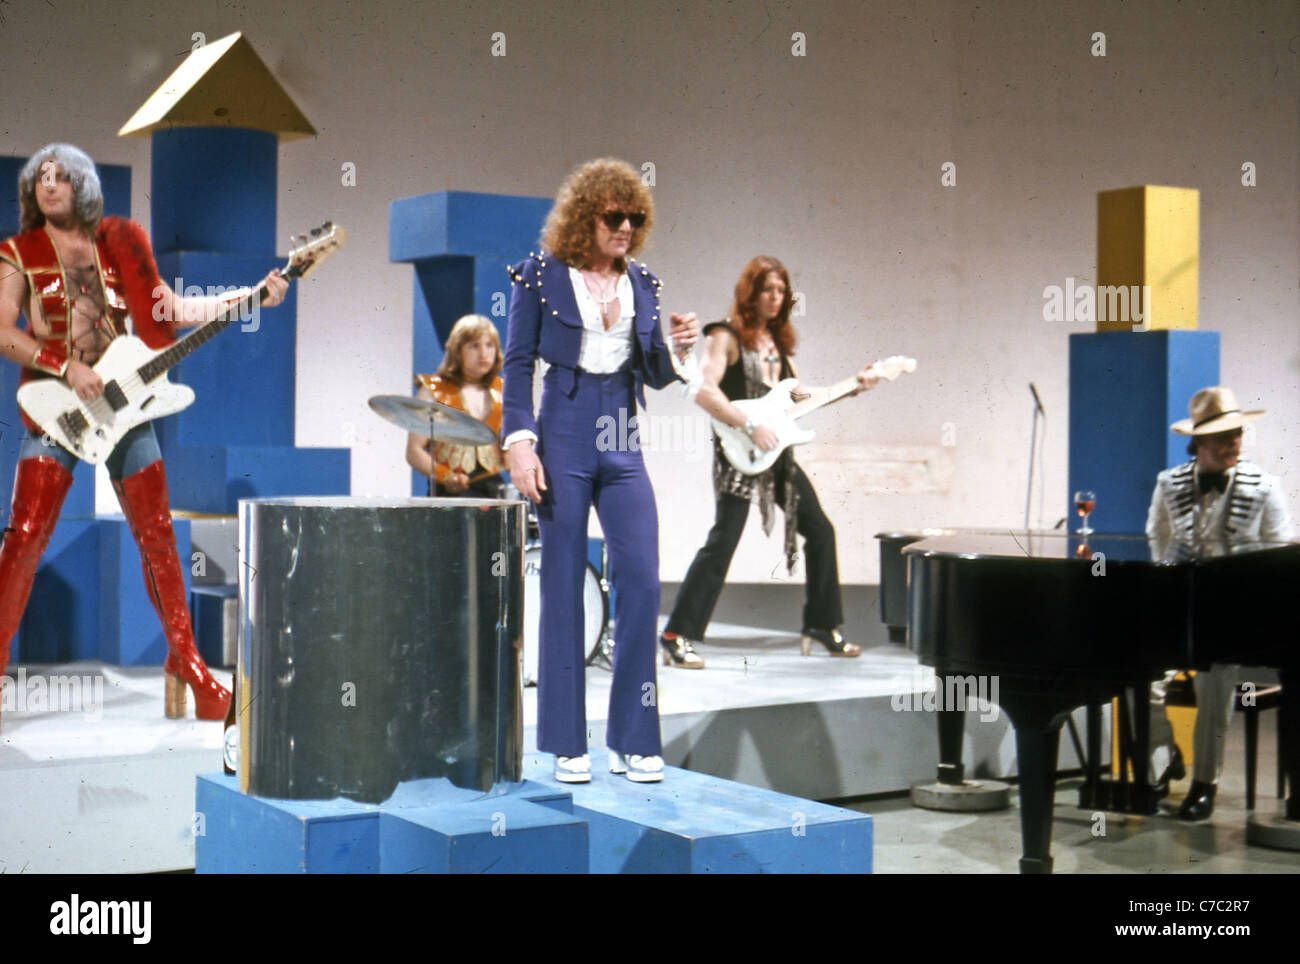 MOTT THE HOOPLE in 1972 from left: Peter Overend Watts, Dale Griffin, Ian Hunter, Ariel bender, Morgan Fisher - Stock Image